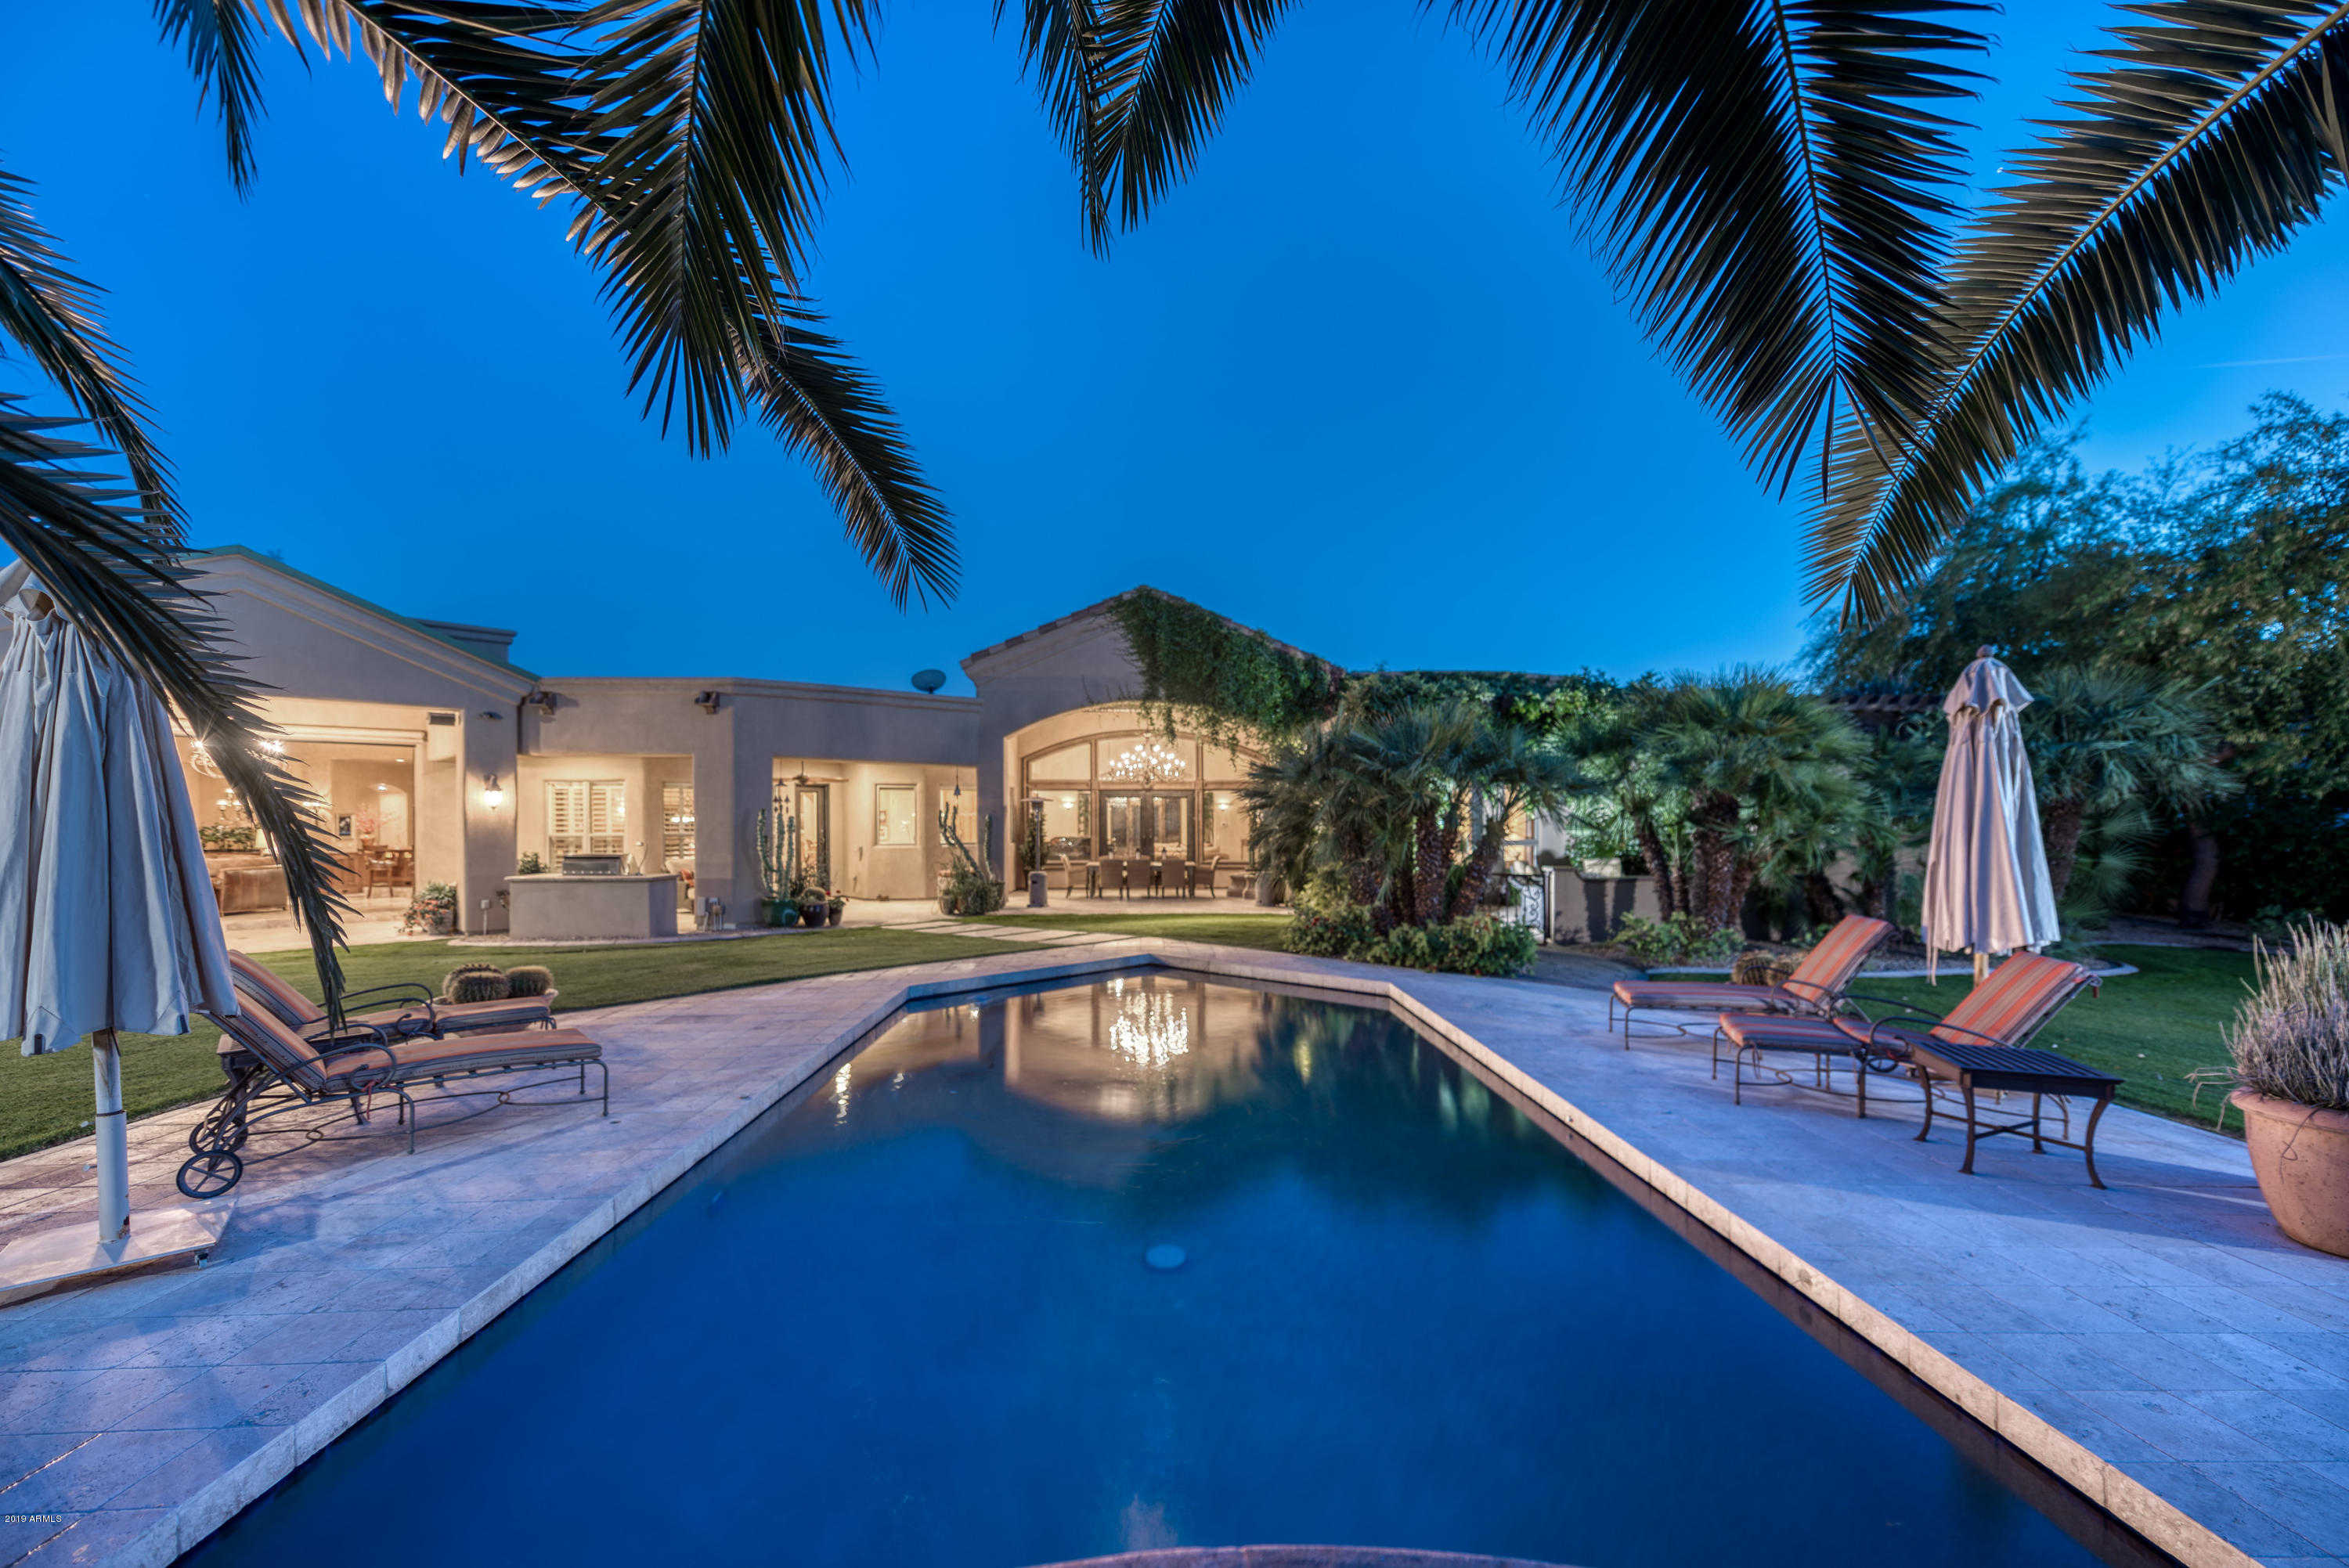 $2,800,000 - 6Br/7Ba - Home for Sale in Cypress Creek Estates, Paradise Valley